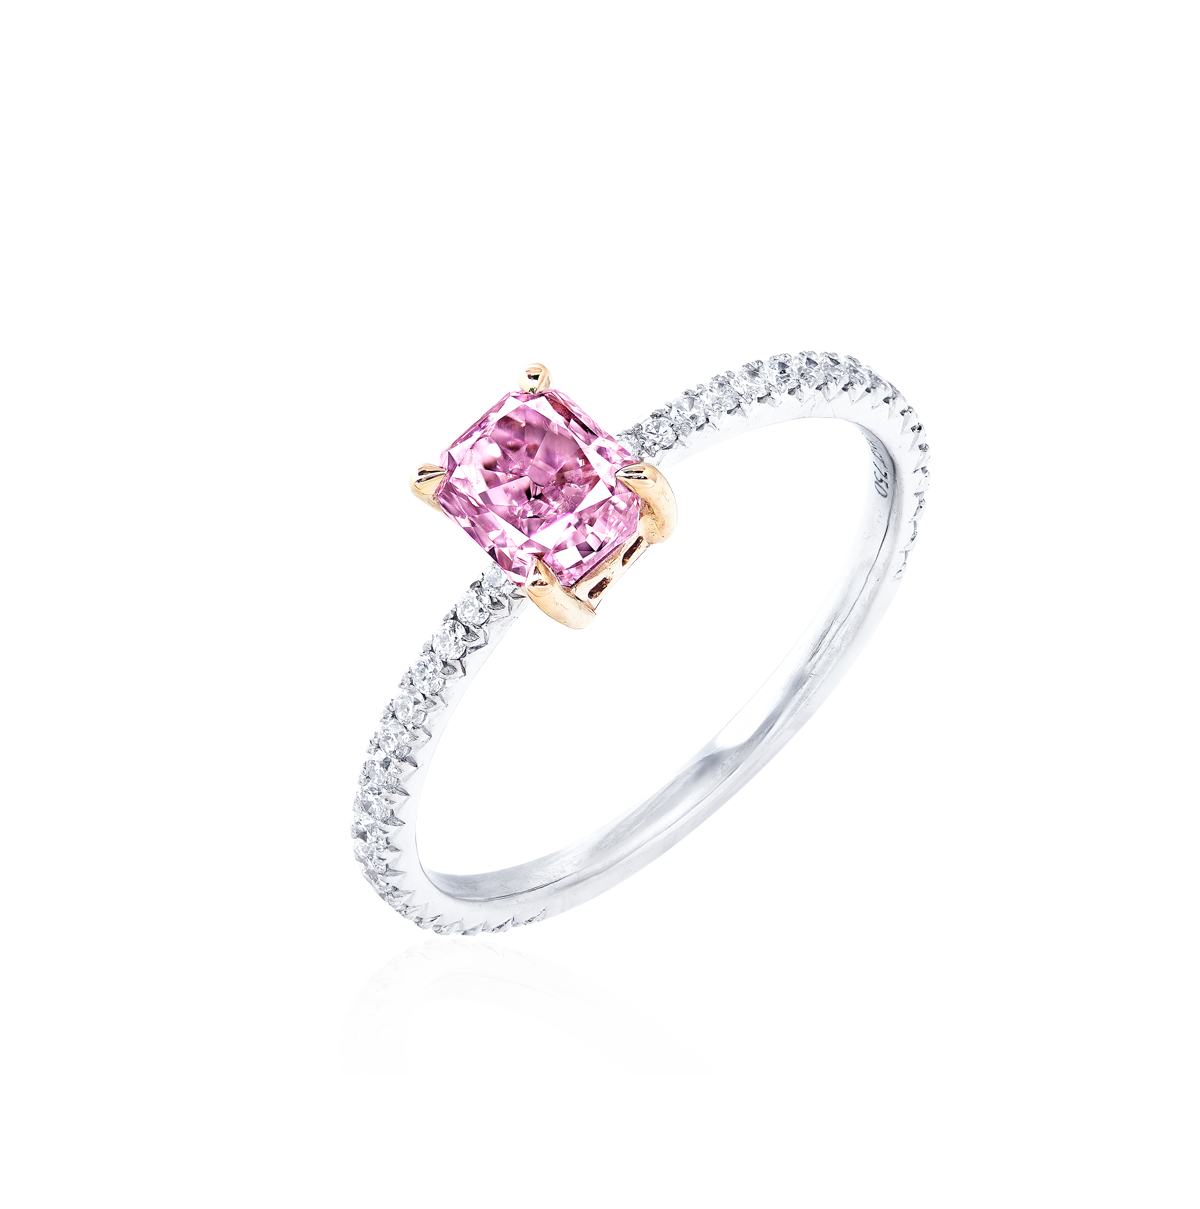 GIA 0.83克拉 ALROSA 紫鑽鑽戒